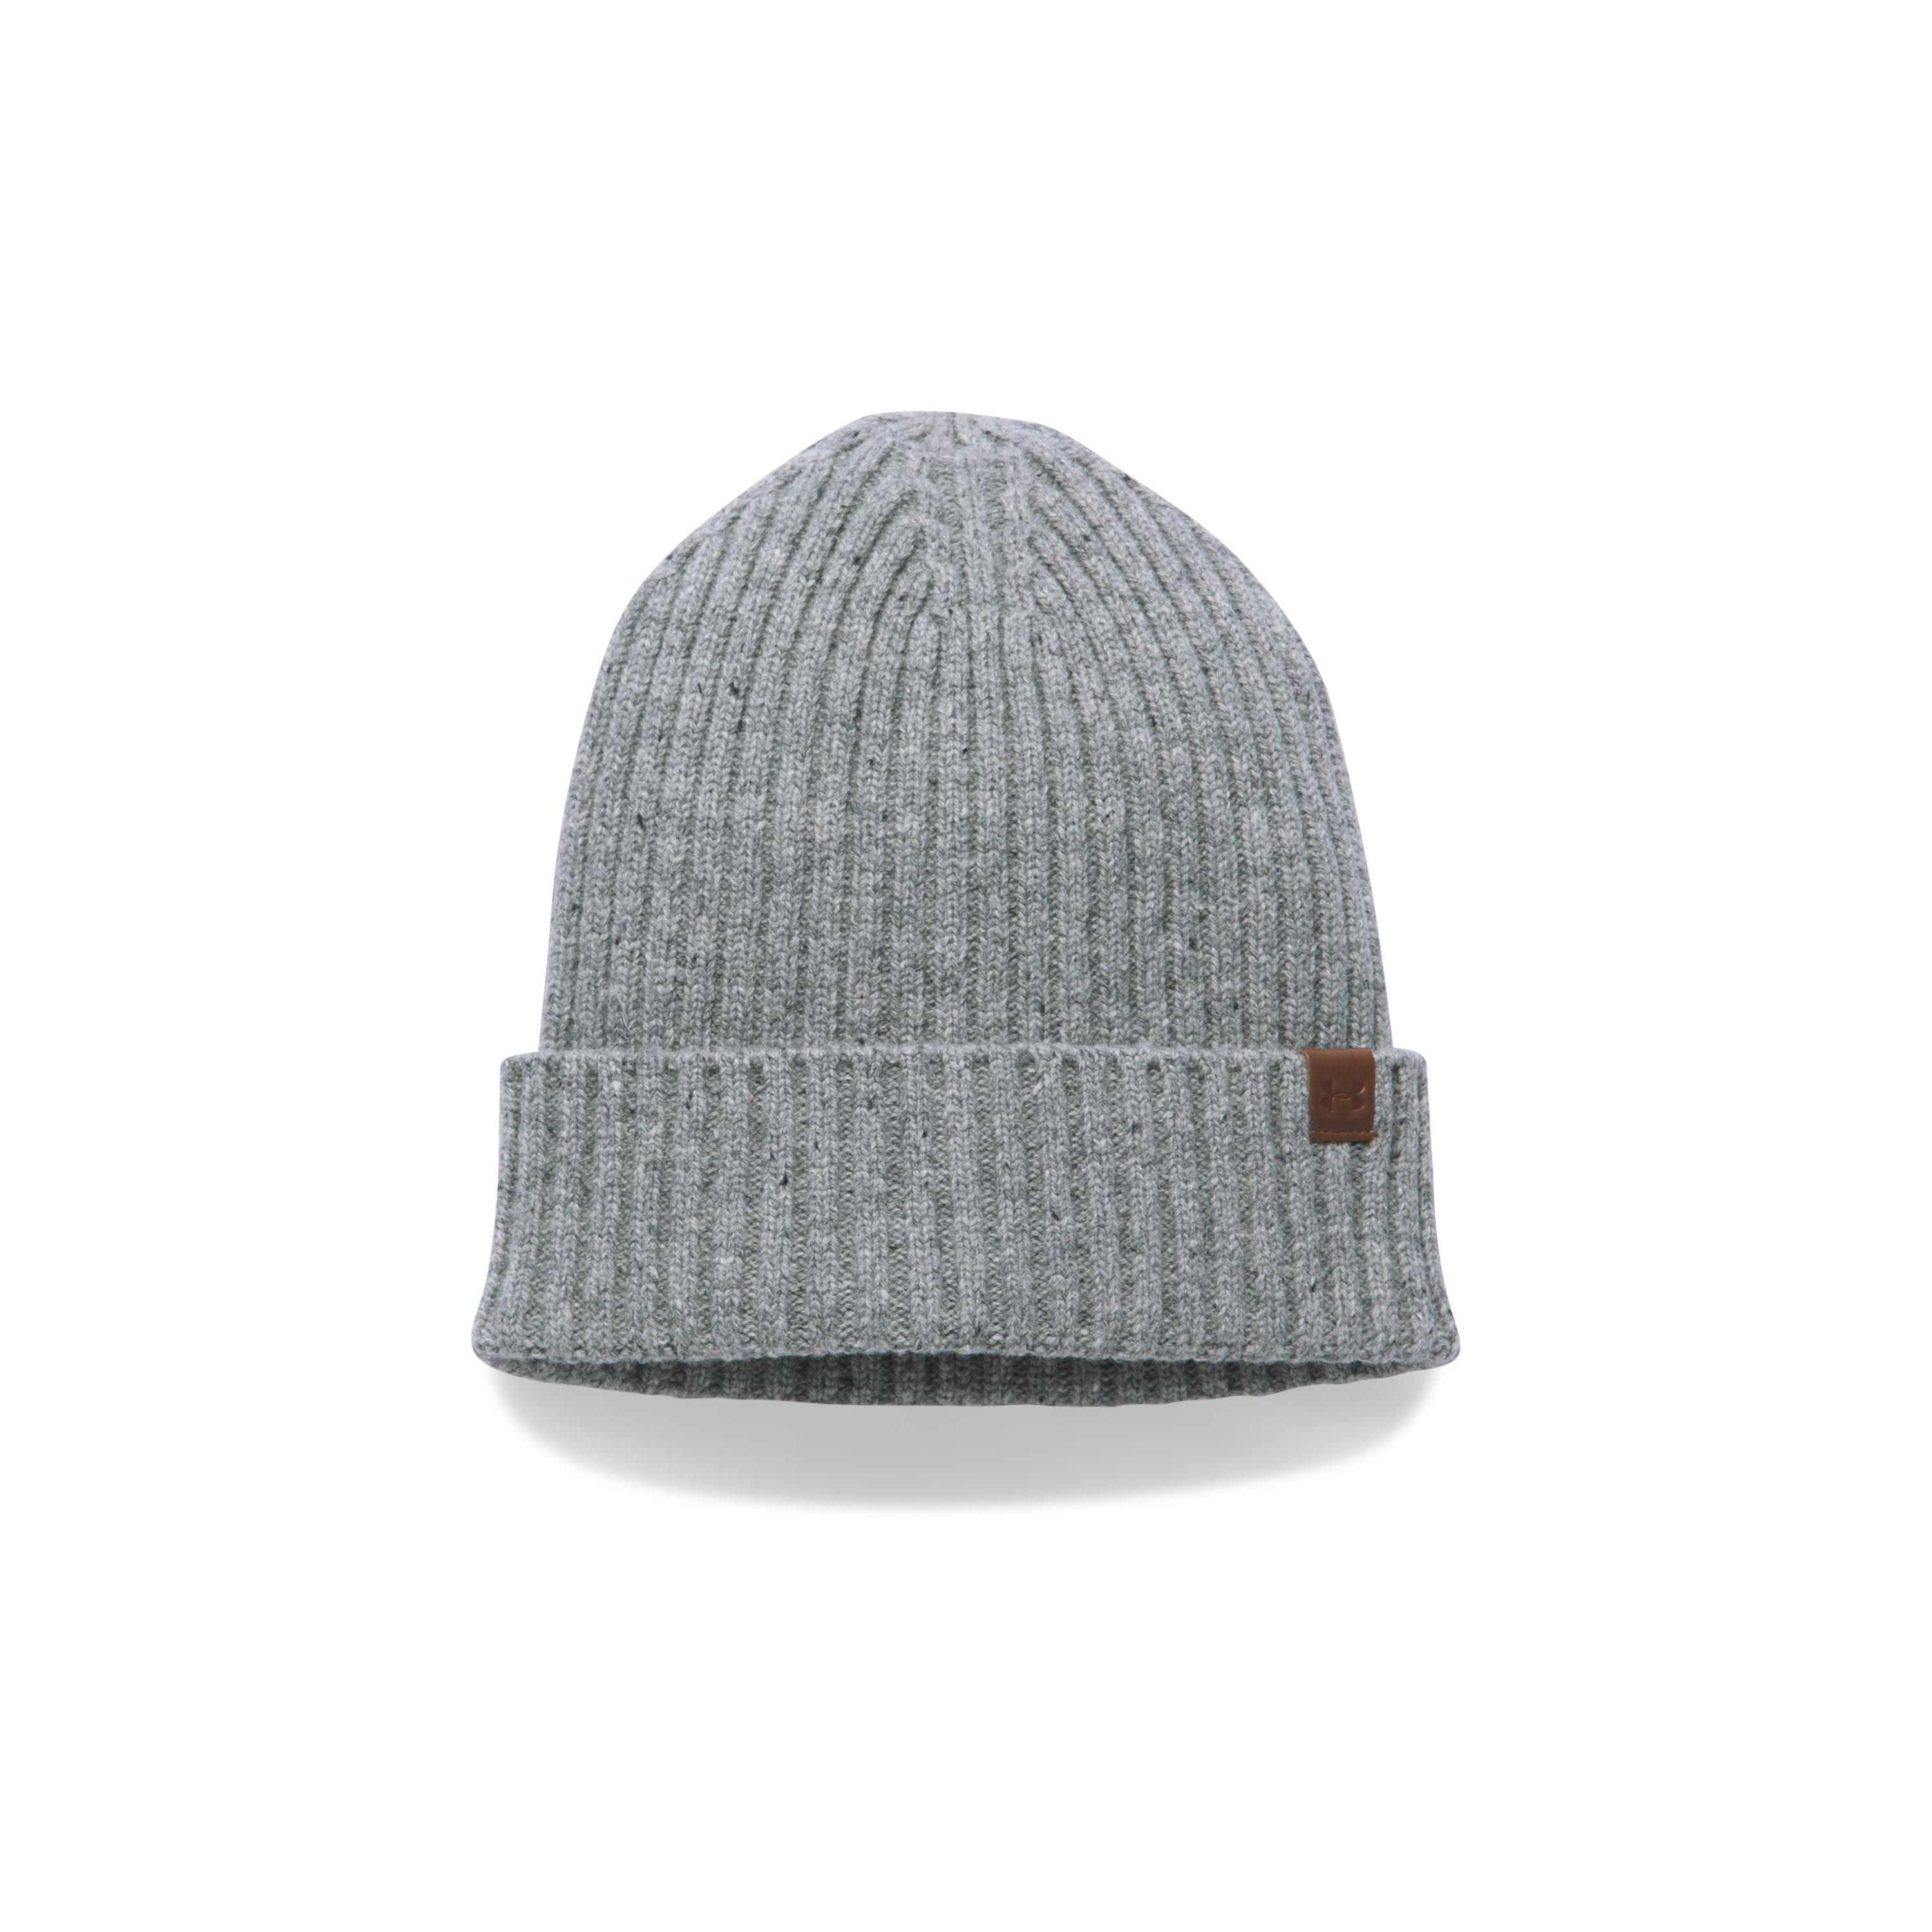 4443ef8cfa6fa Lyst - Under Armour Outdoor Performance Wool Beanie in Gray for Men